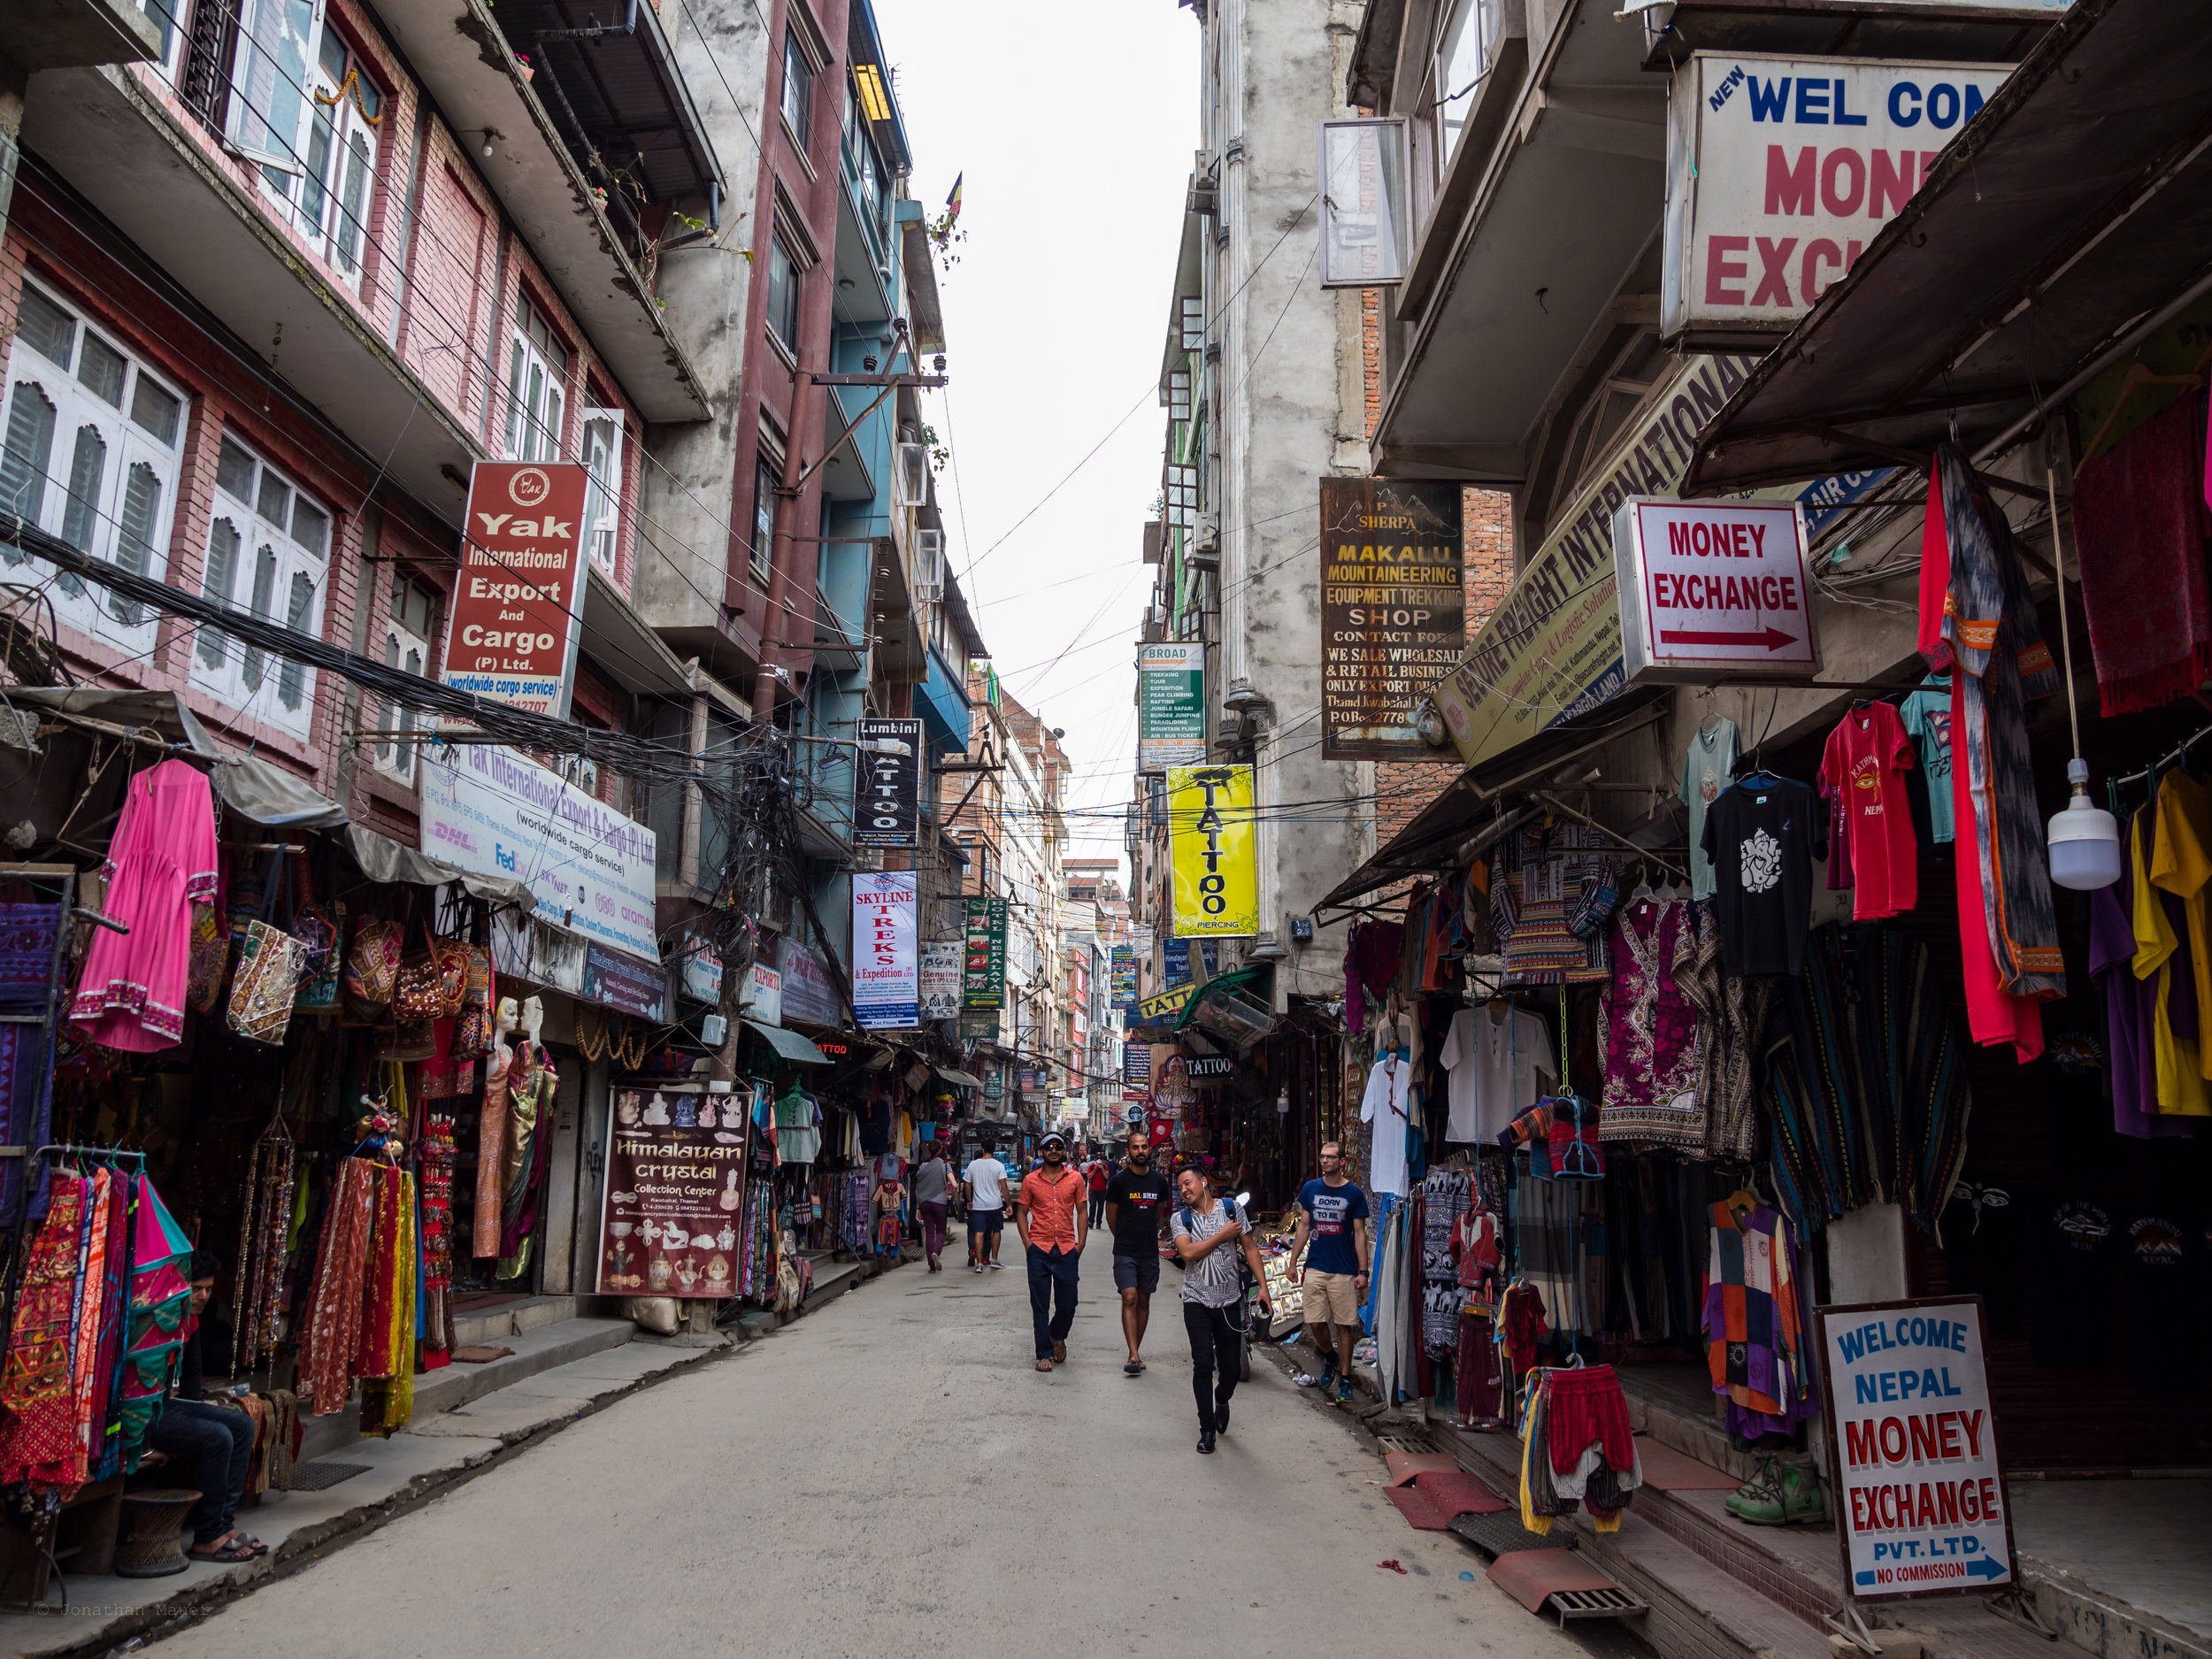 A typical street in Thamel.